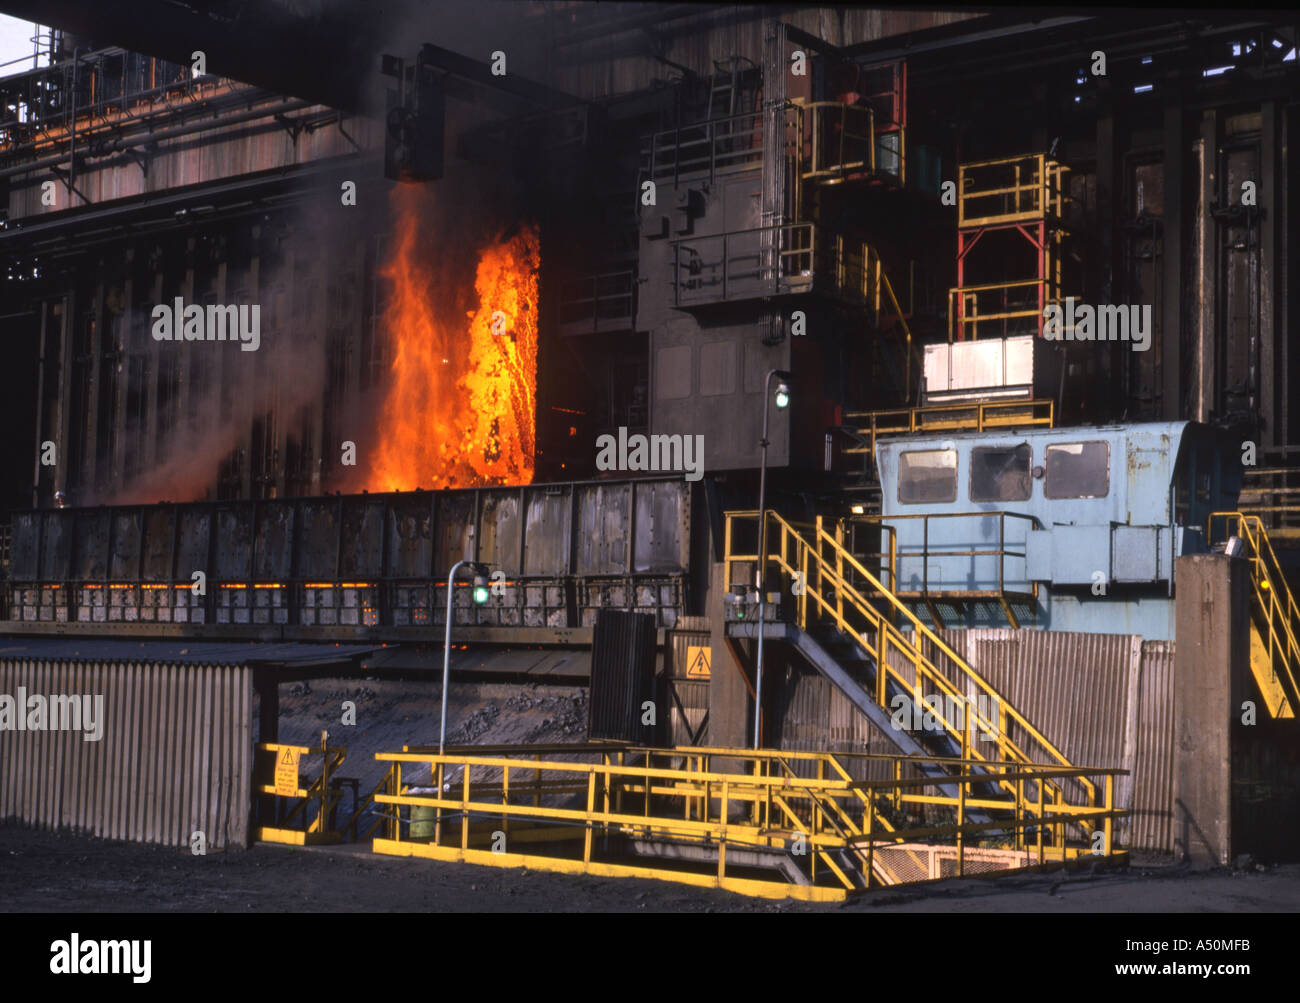 Coke Being Pushed From A Coke Oven And Caught In A Coke